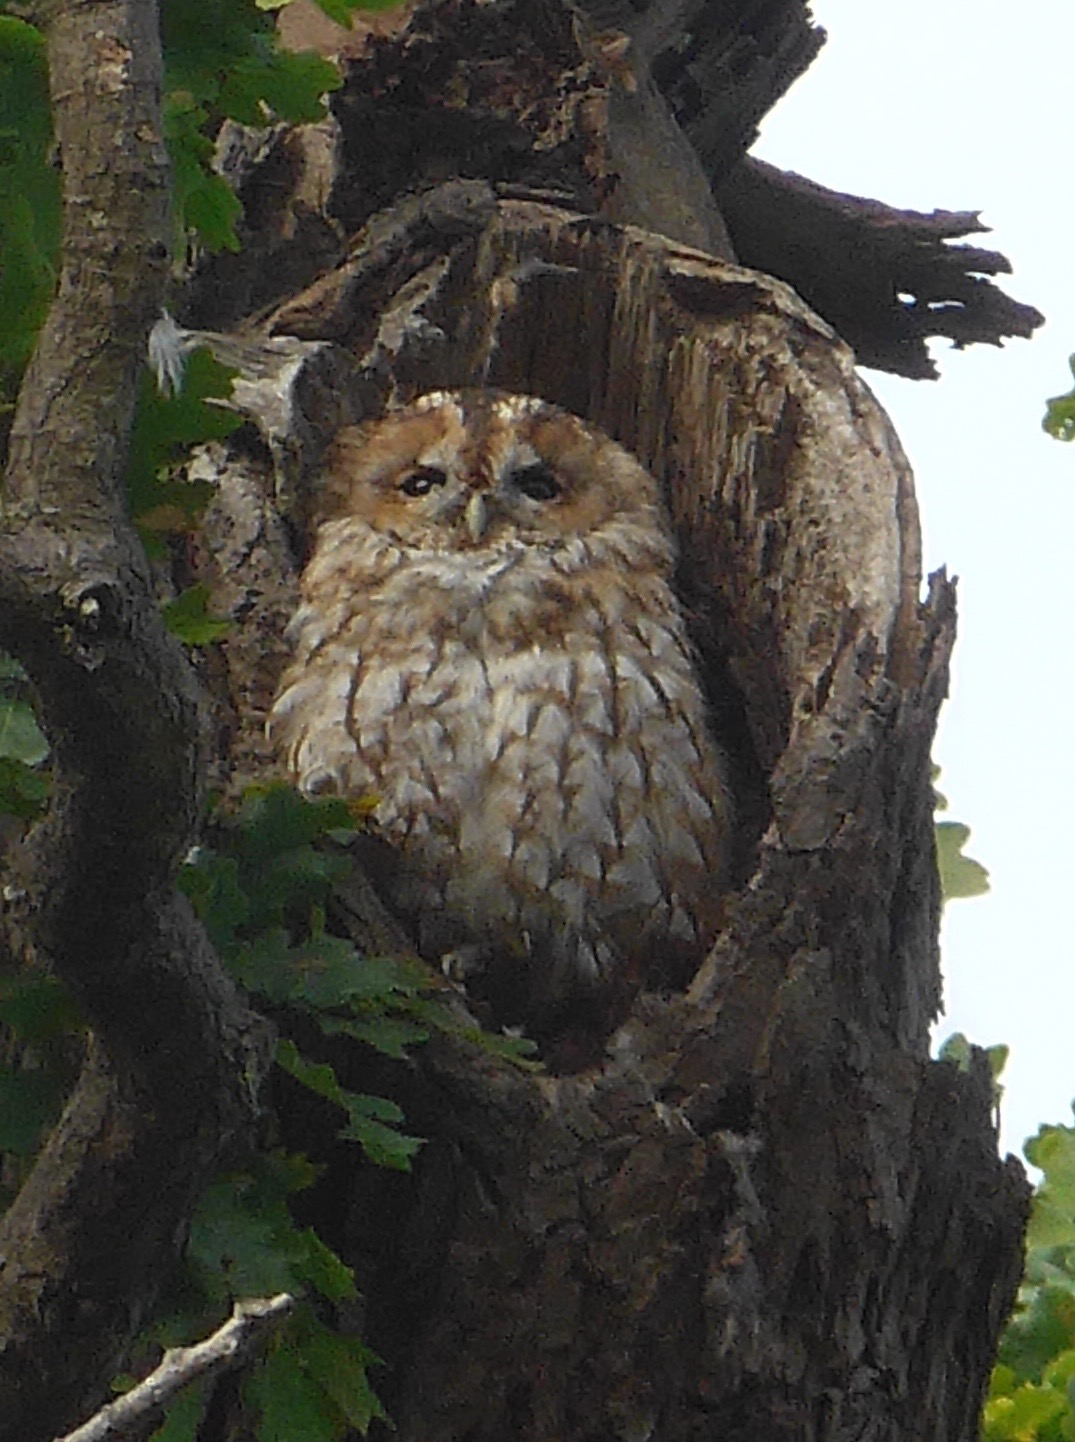 Mabel the Tawny Owl